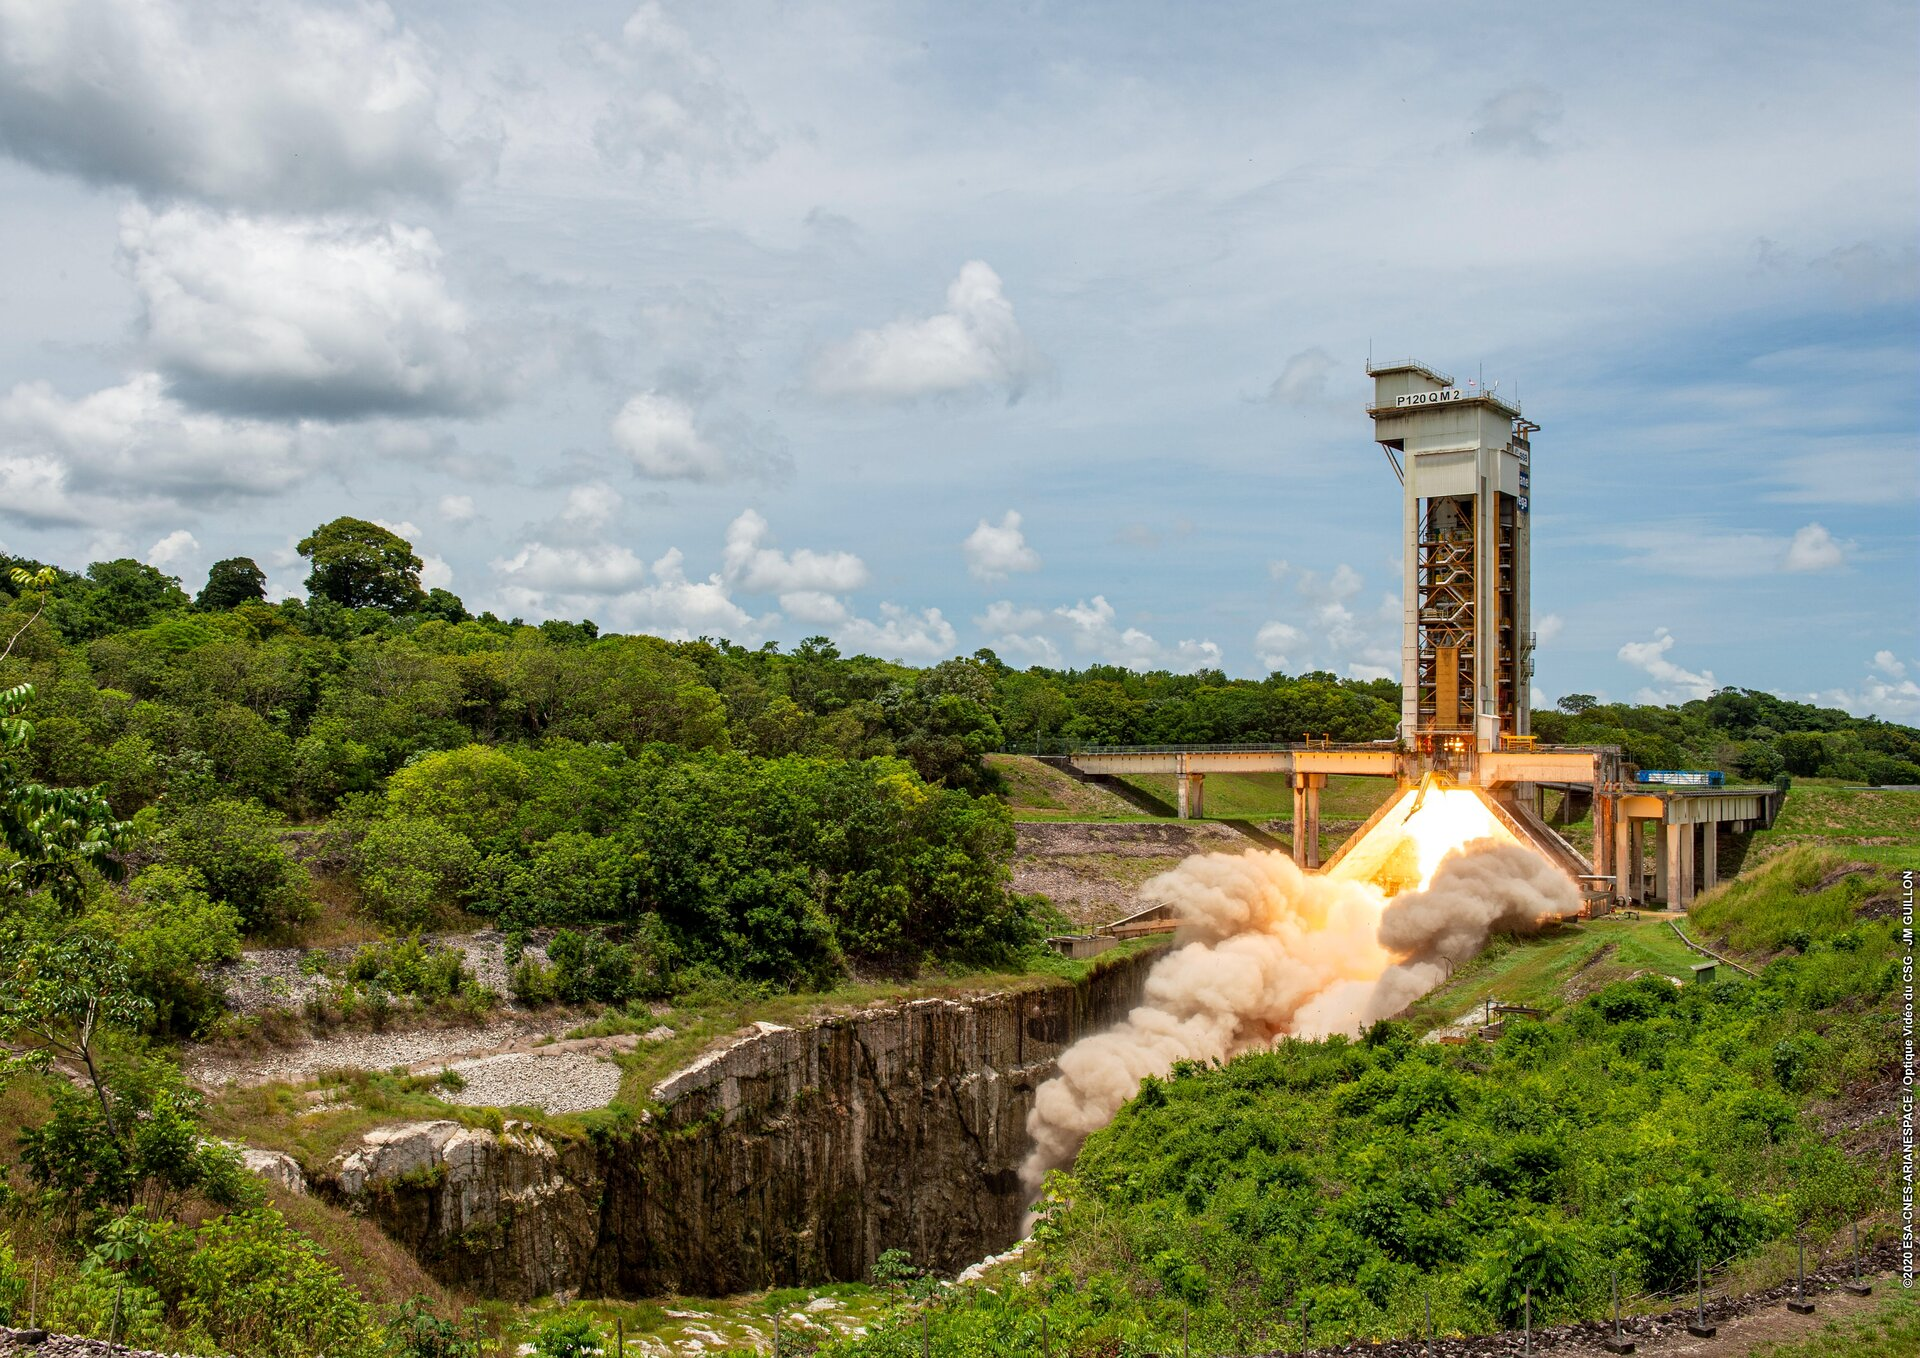 The qualification model of the P120C motor for Ariane 6 completed its hot firing on 7 October 2020 at Europe's Spaceport